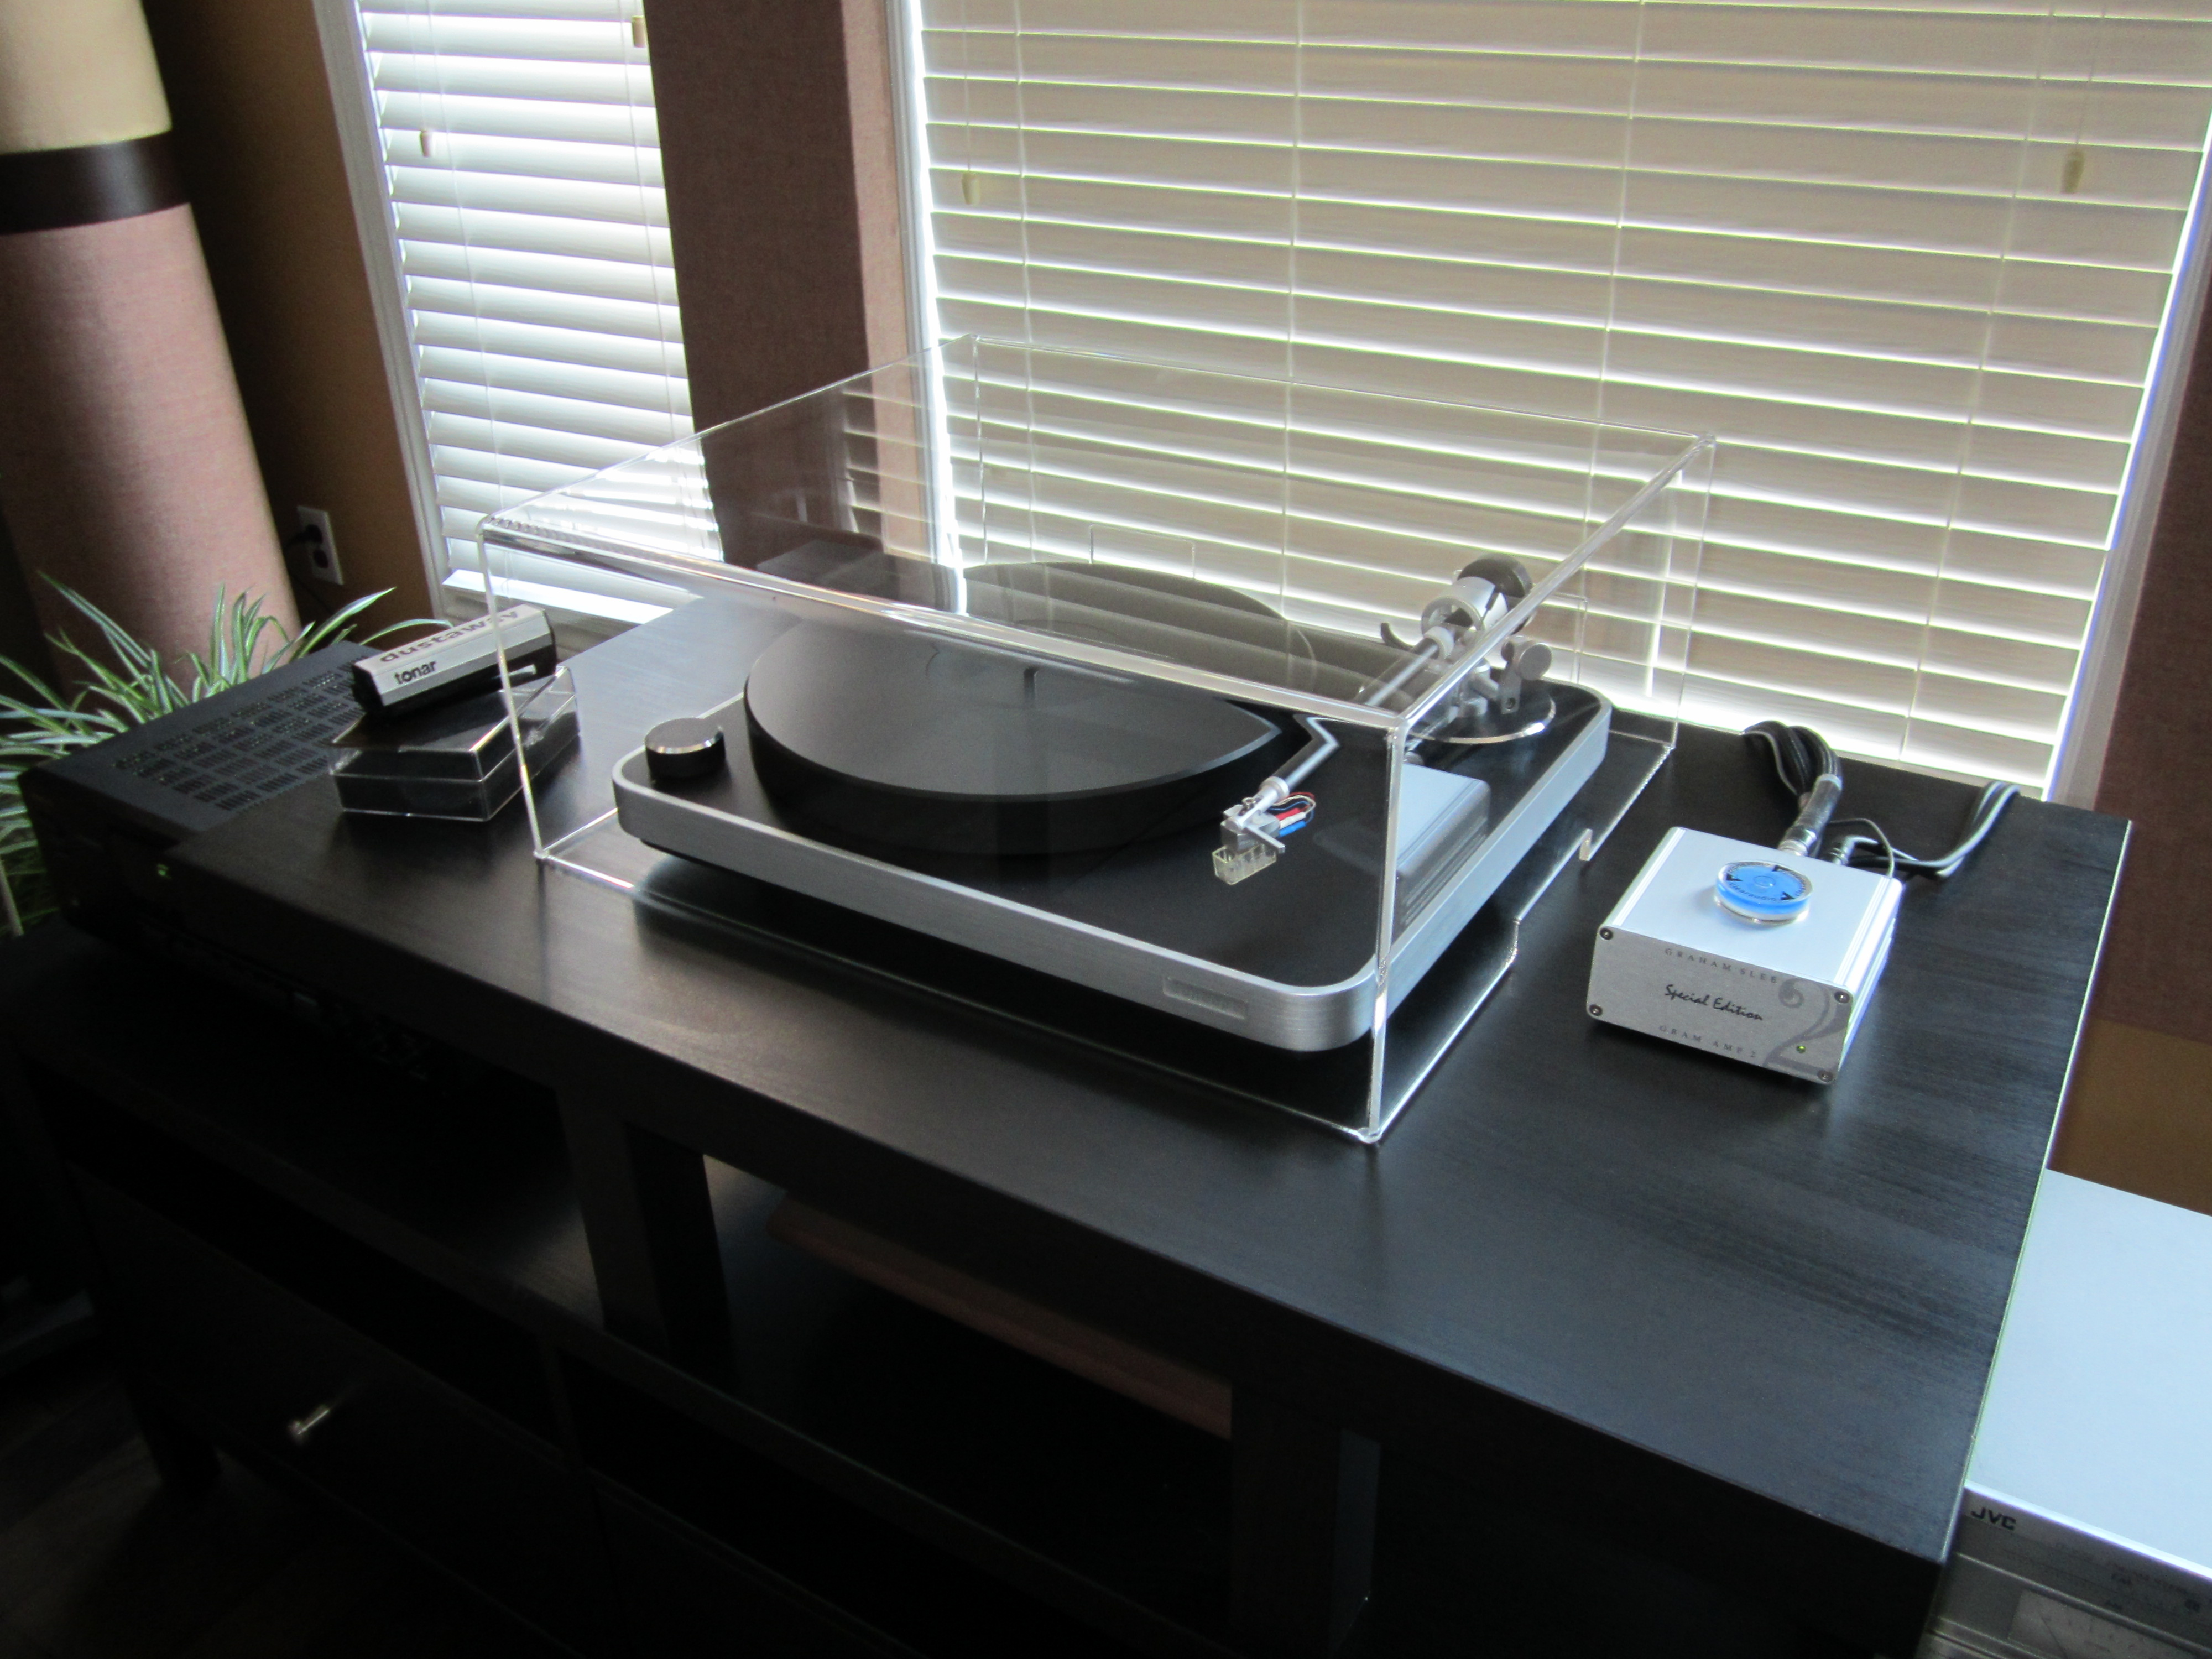 Best Way To Dust Furniture Concept clearaudio concept cover review | acrylic turntable dust covers